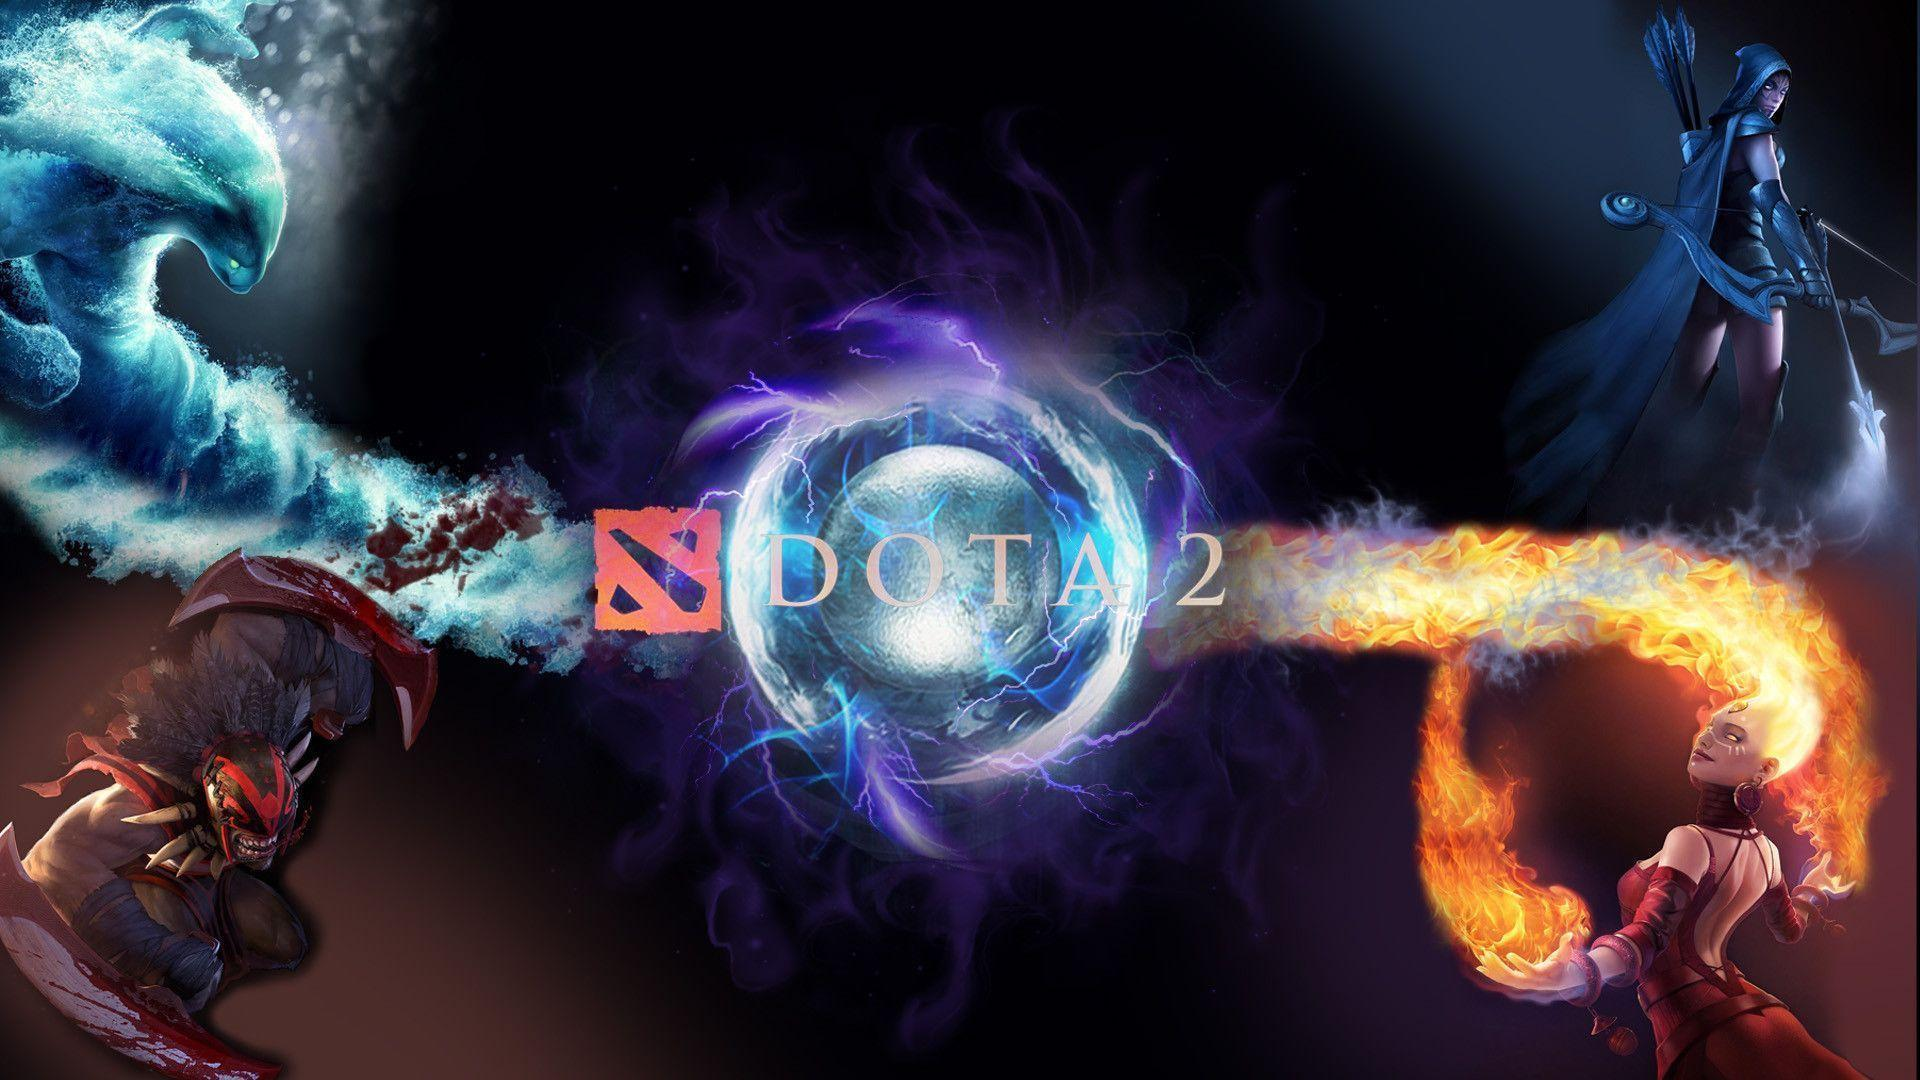 dota 2 game background - photo #14